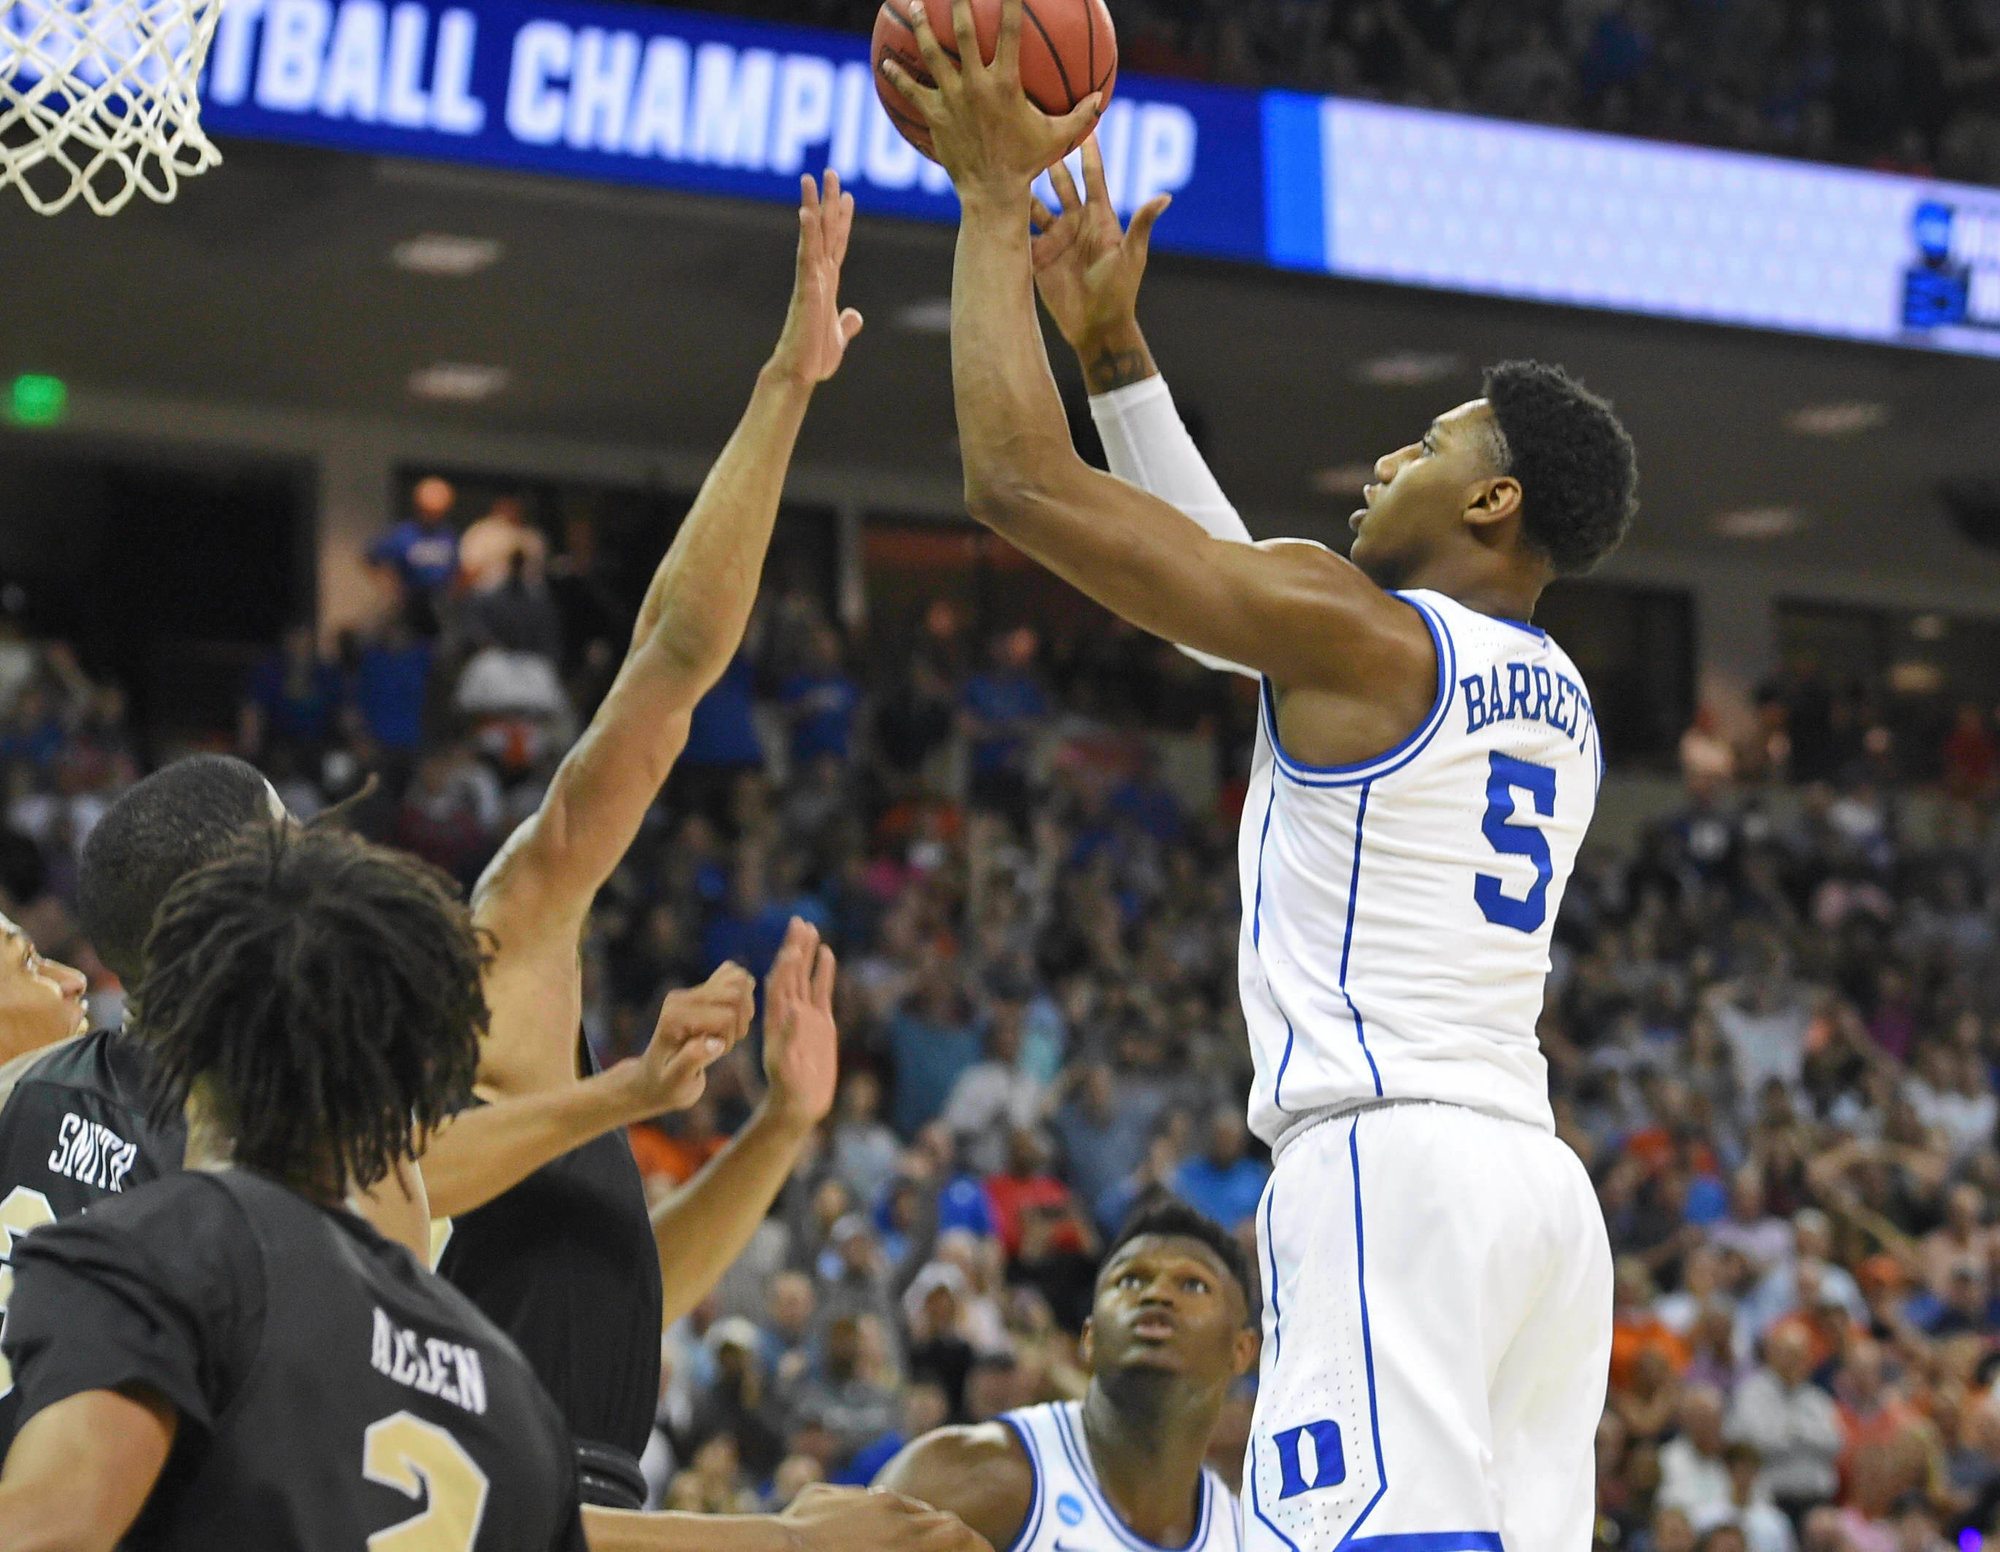 bce5f57c291 Duke survives upset bid from UCF